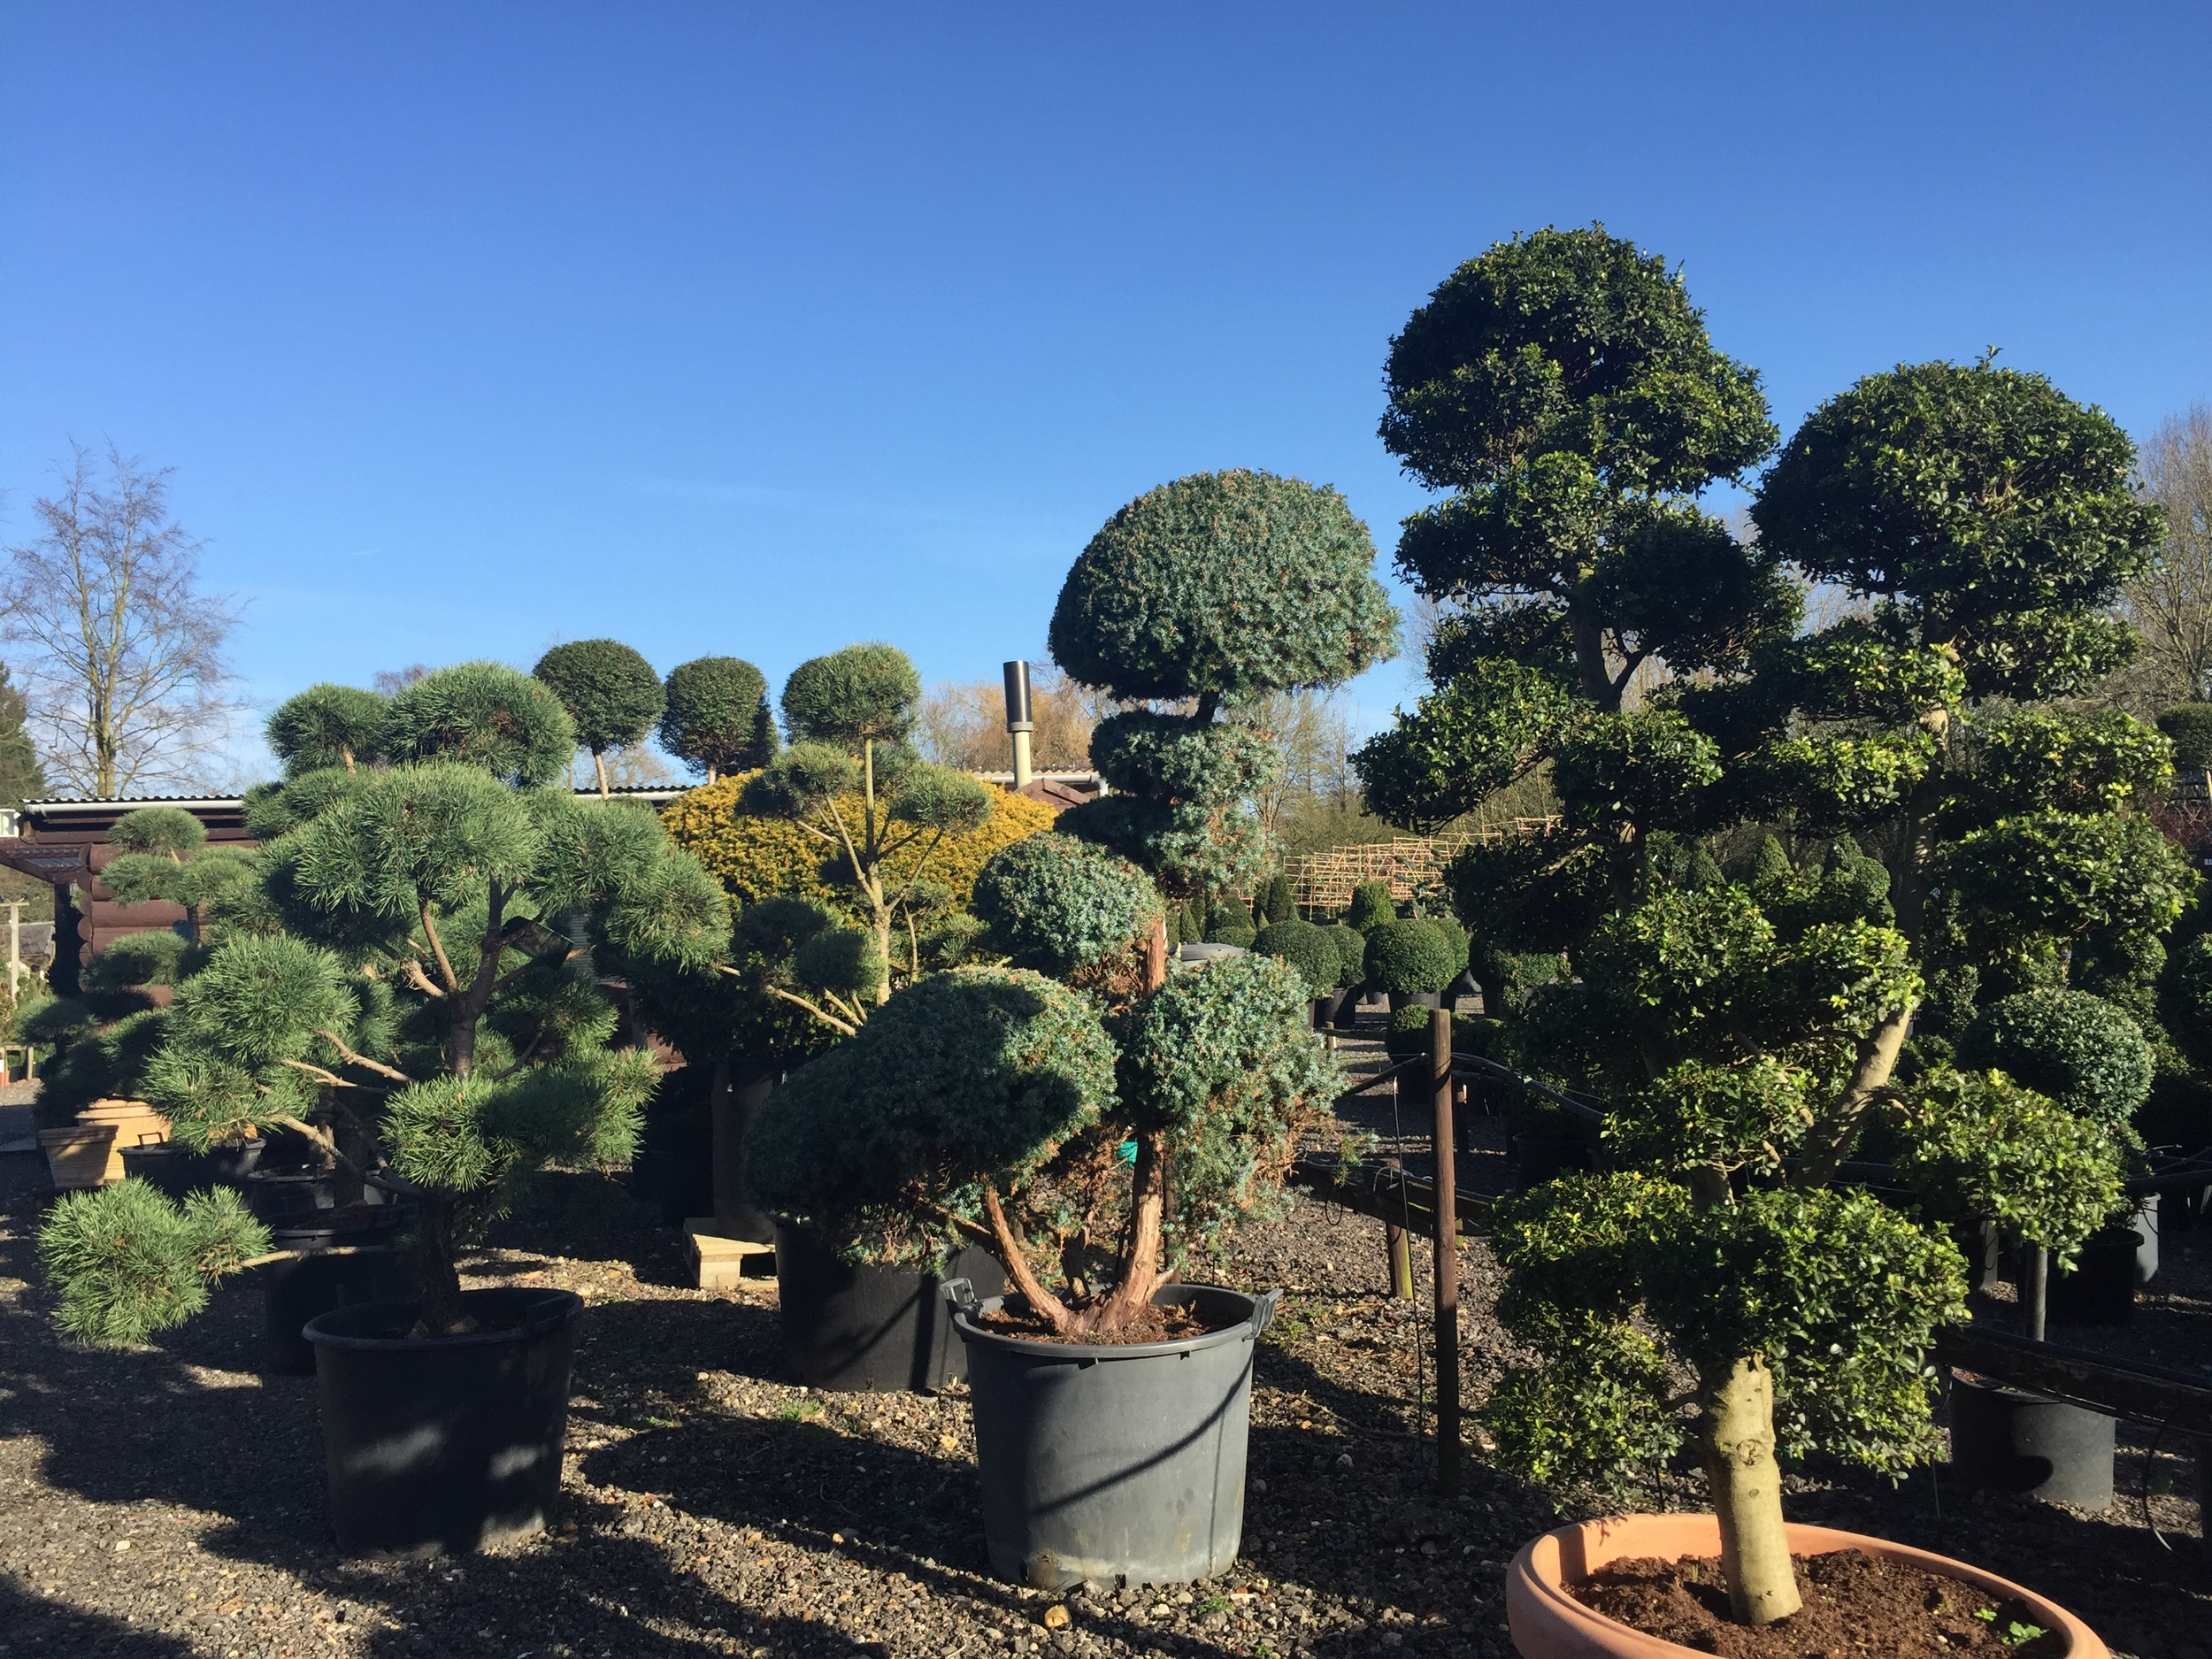 Juniper cloud, Japanese holly cloud and Pine cloud trees